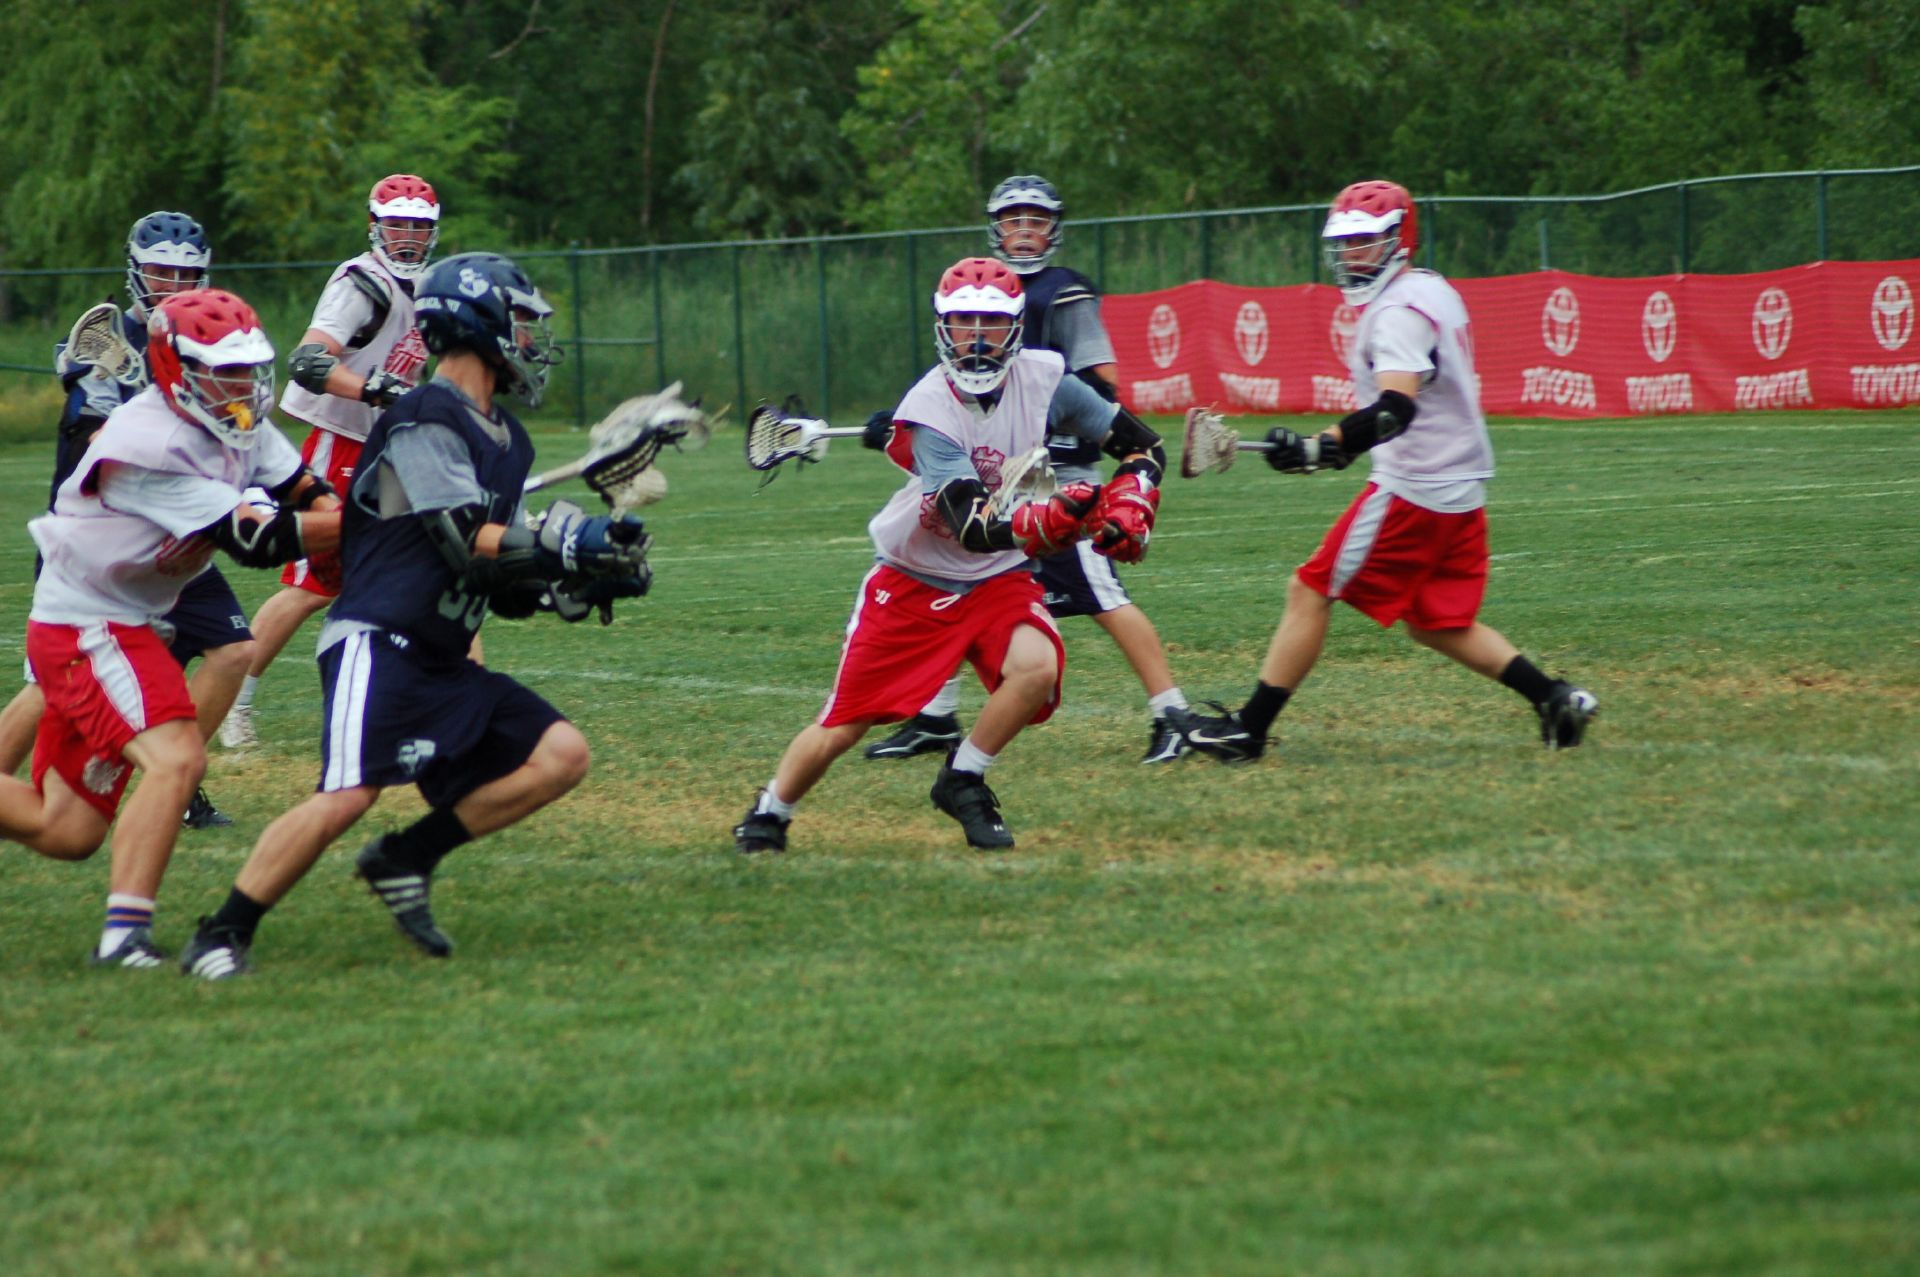 https://buffalolacrosse.com/wp-content/uploads/2020/03/2008-Team-Shooting-pic.jpg